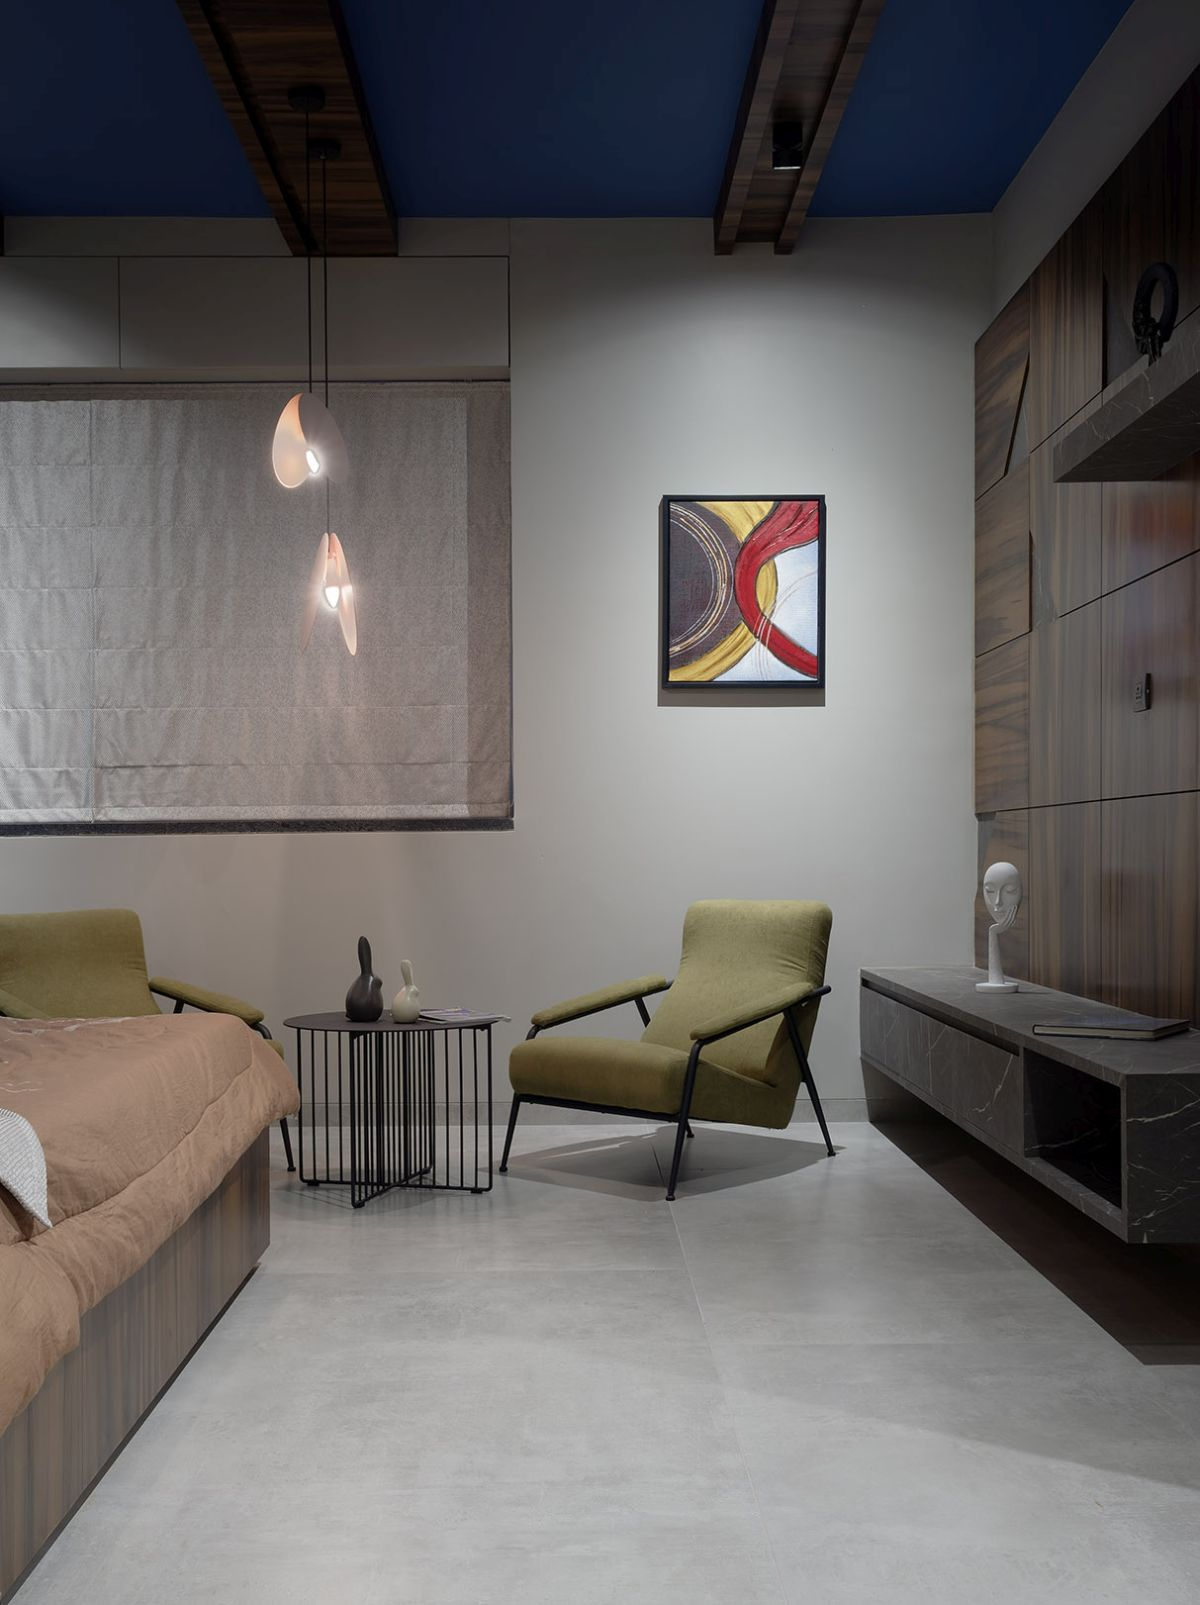 GHEI RESIDENCE at NANDED, MAHARASHTRA, by 4TH AXIS DESIGN STUDIO 48